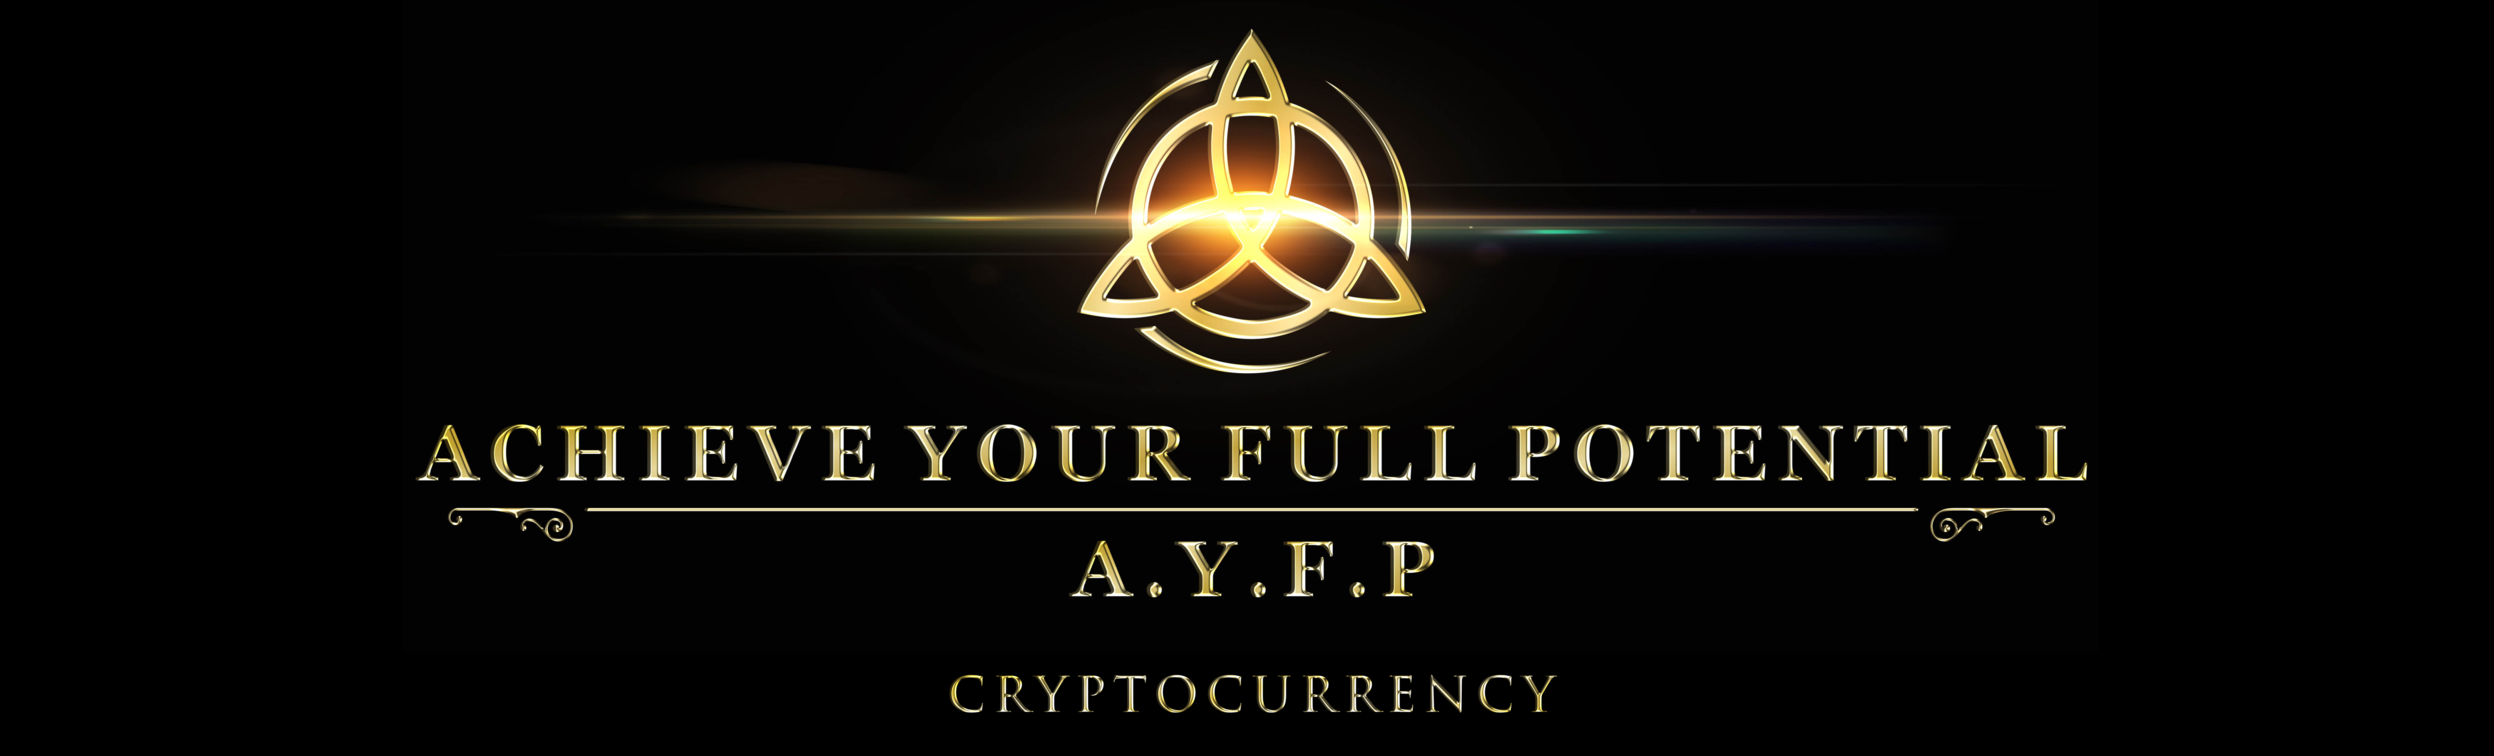 Banner_crypto.png